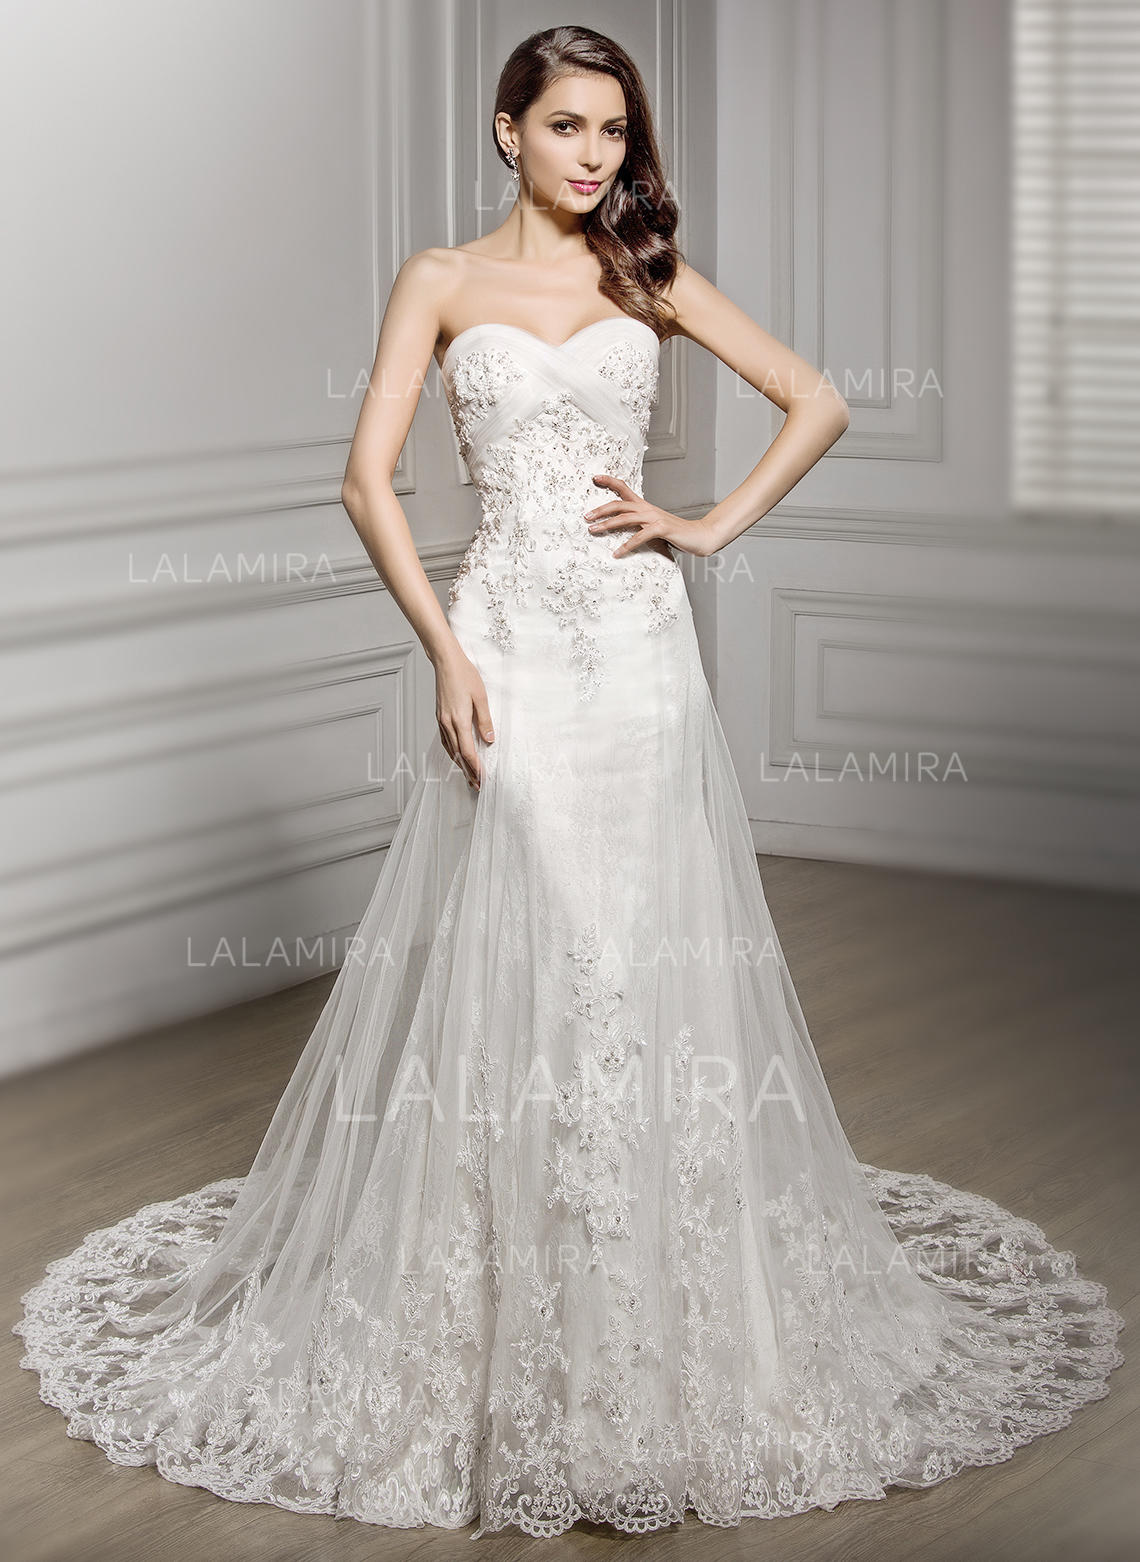 502ba4dc5e5 Strapless Sleeveless Sweetheart With Tulle Lace Wedding Dresses  (002210585). Loading zoom